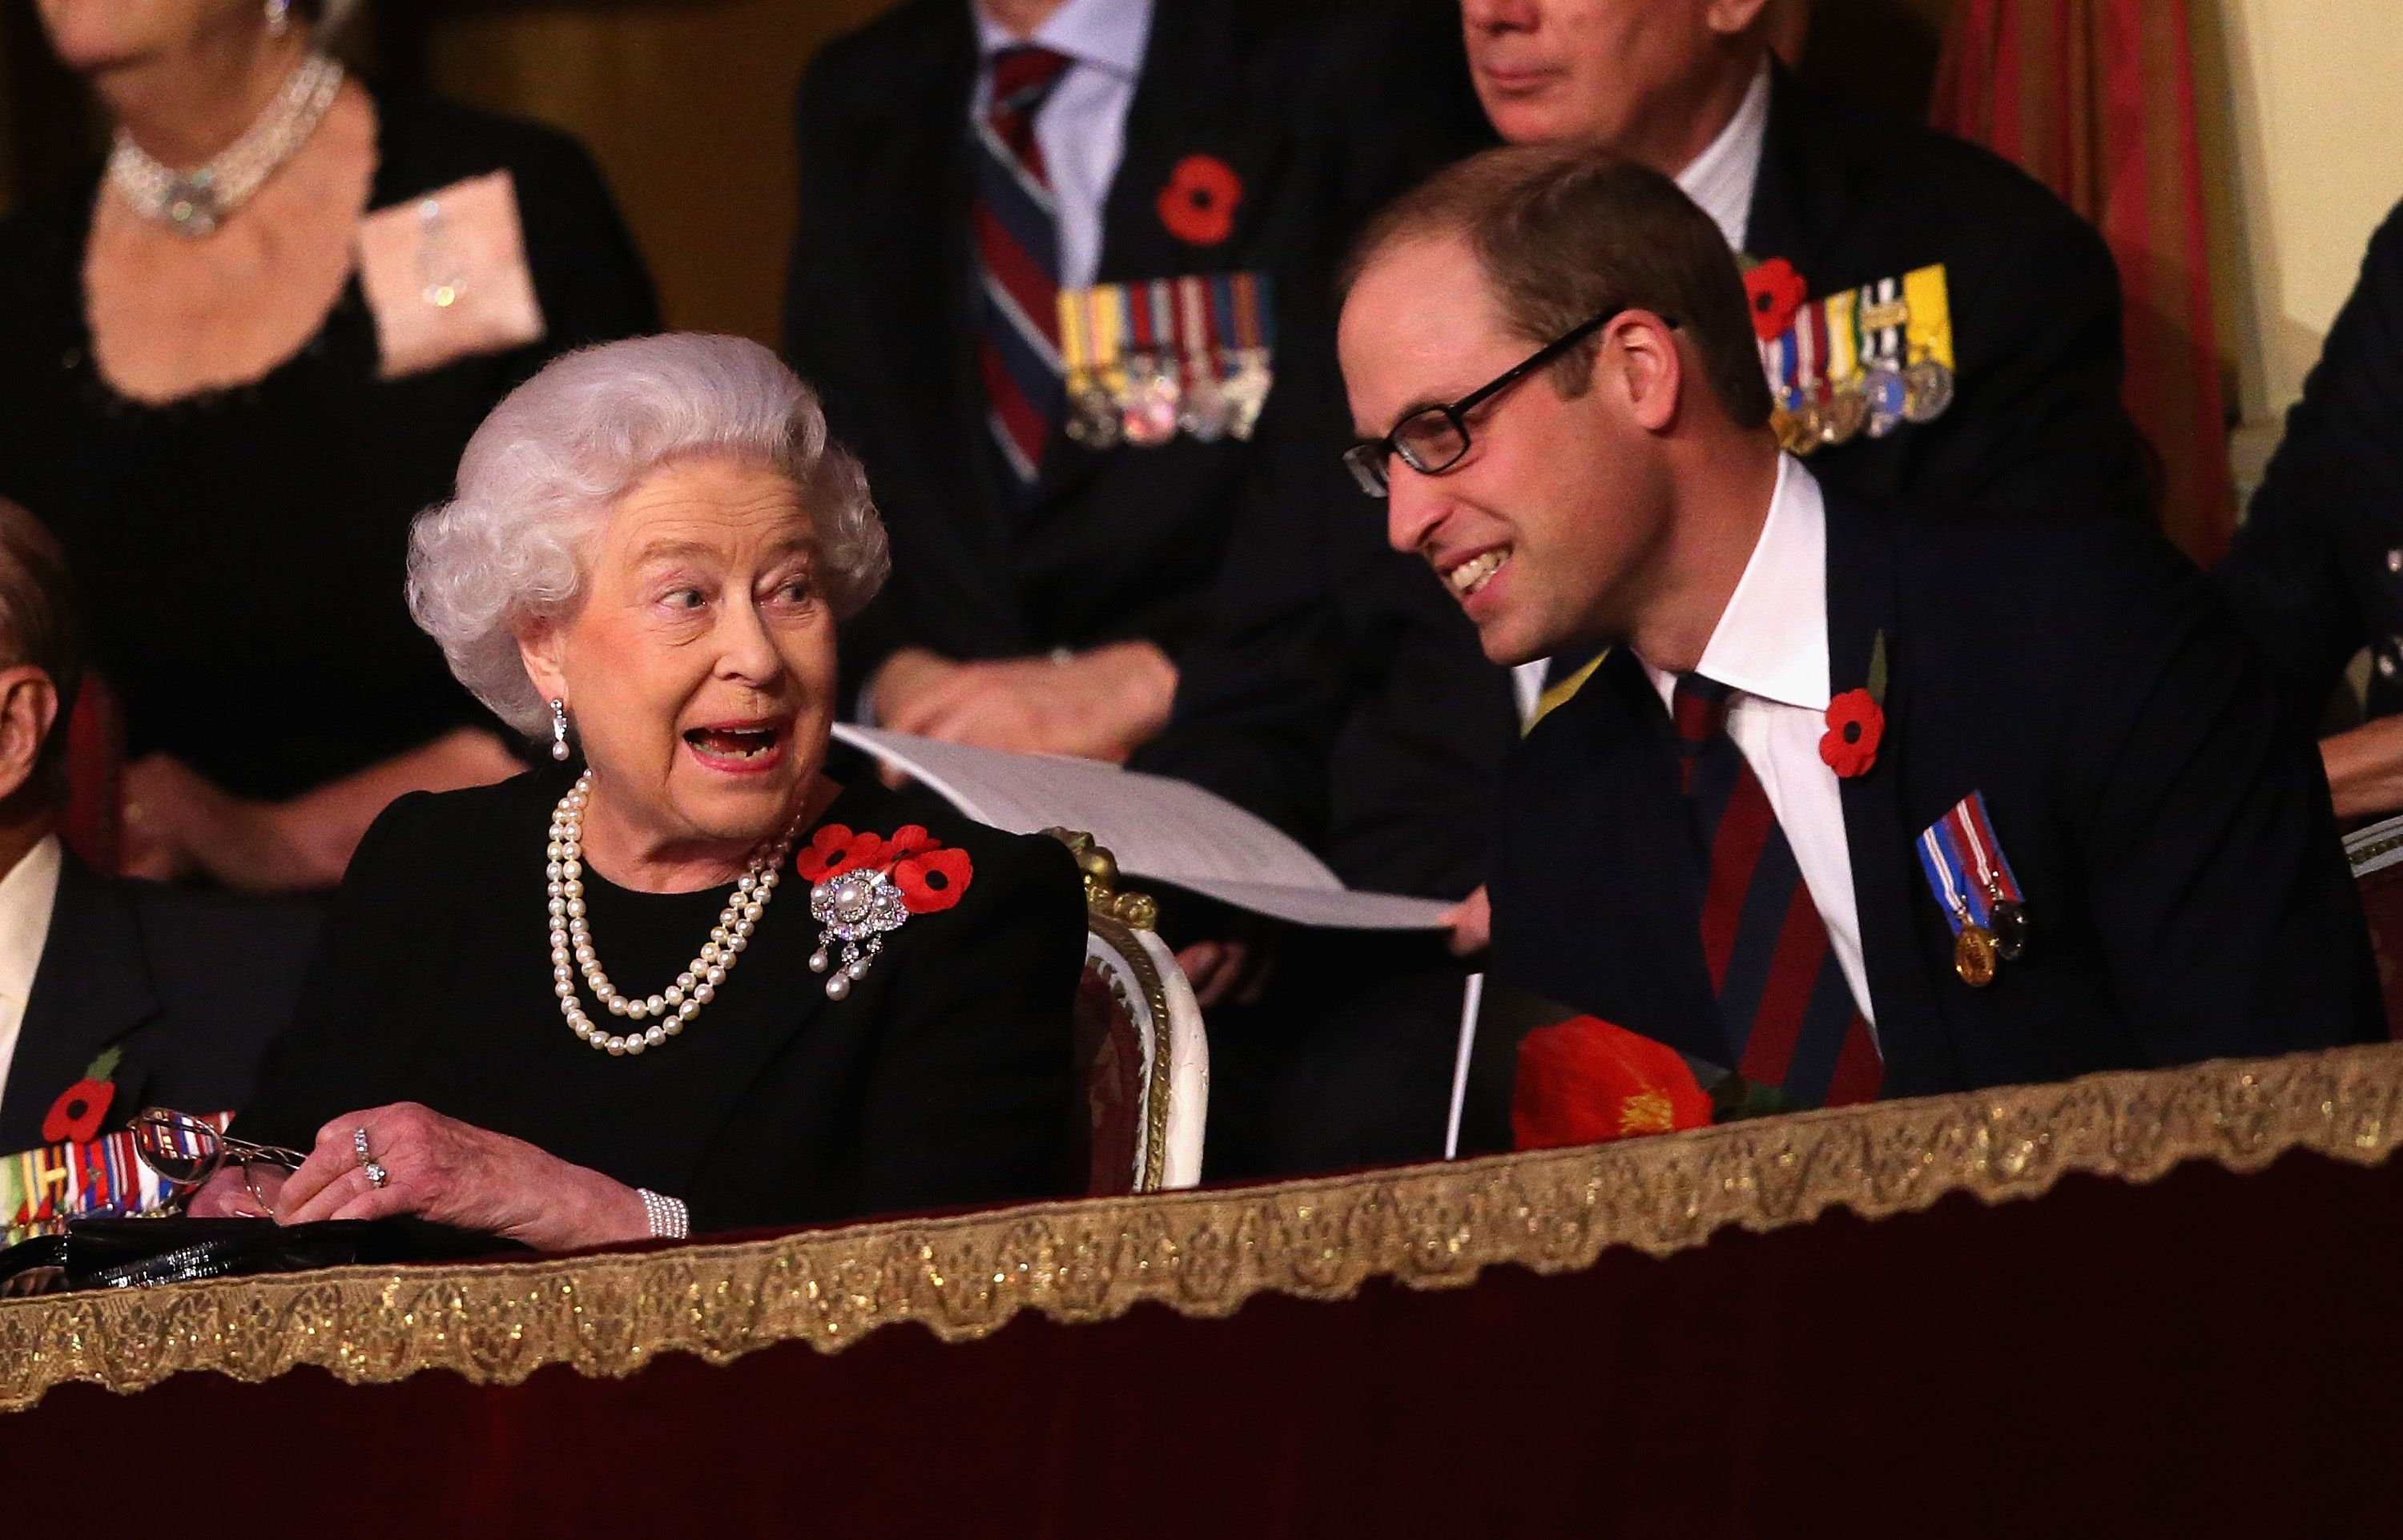 Prince William has received a new high commissioner title from the Queen